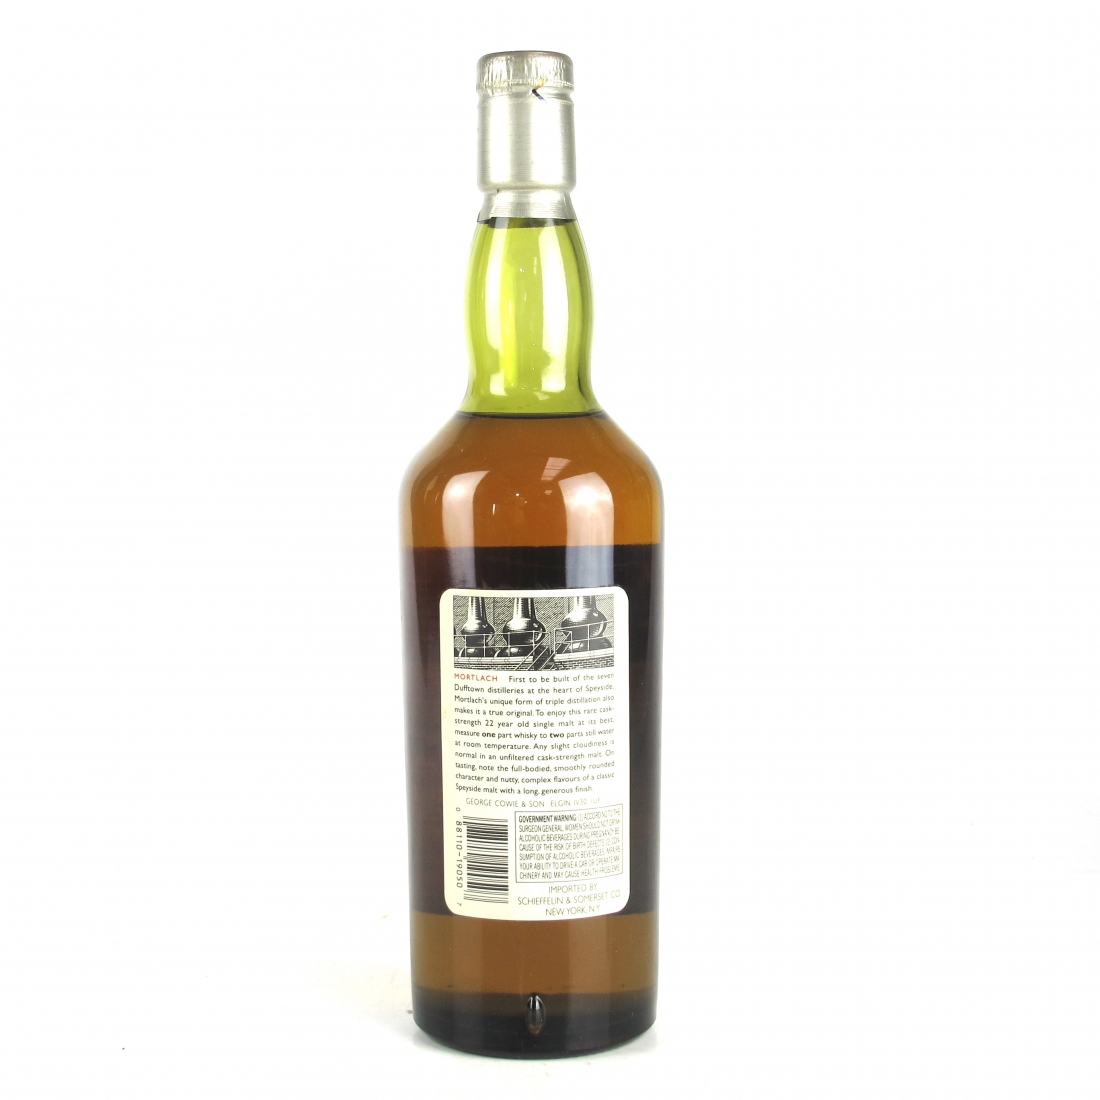 Mortlach 1972 Rare Malt 22 Year Old 75cl / 65.3% US Import